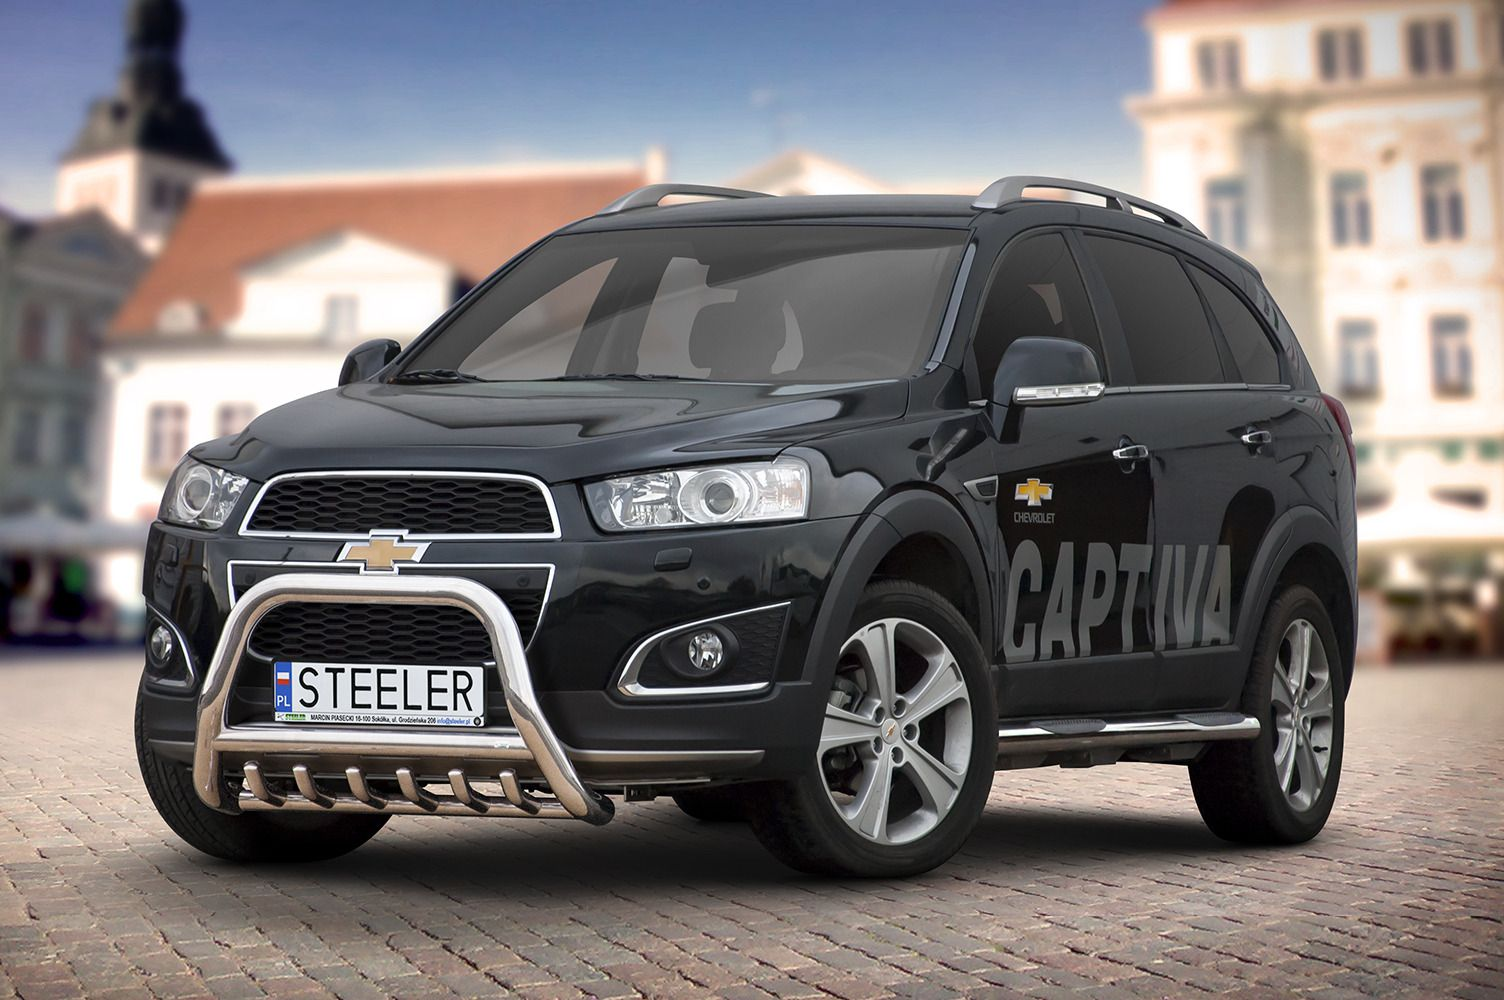 2019 Chevrolet Captiva Check More At Http Www New Cars Club 2019